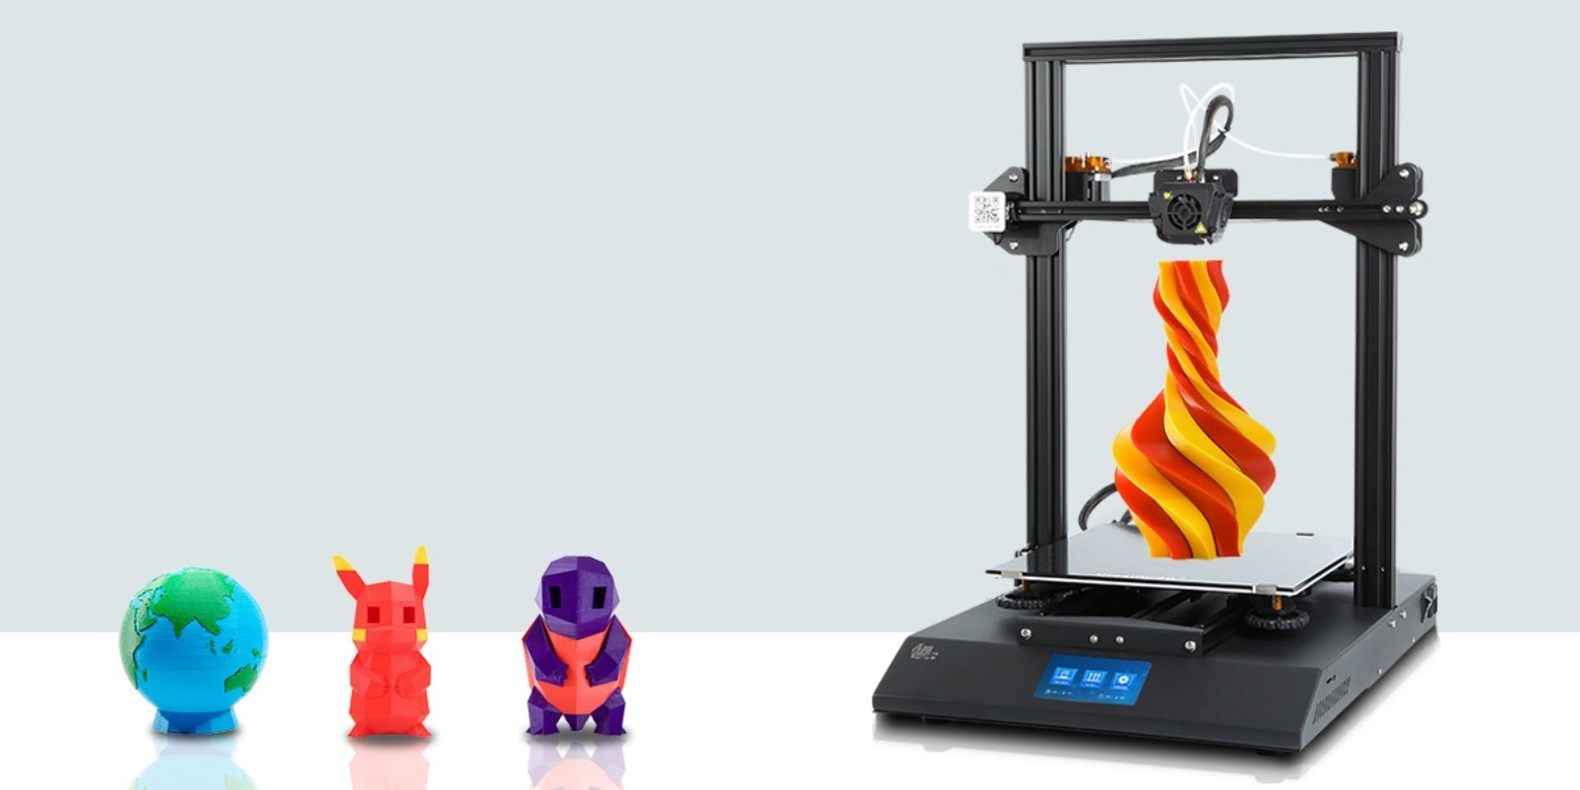 3D printer reviews: Creality3D CR10, Creality3D CR ENDRE 3 and Creality3D CR10S.